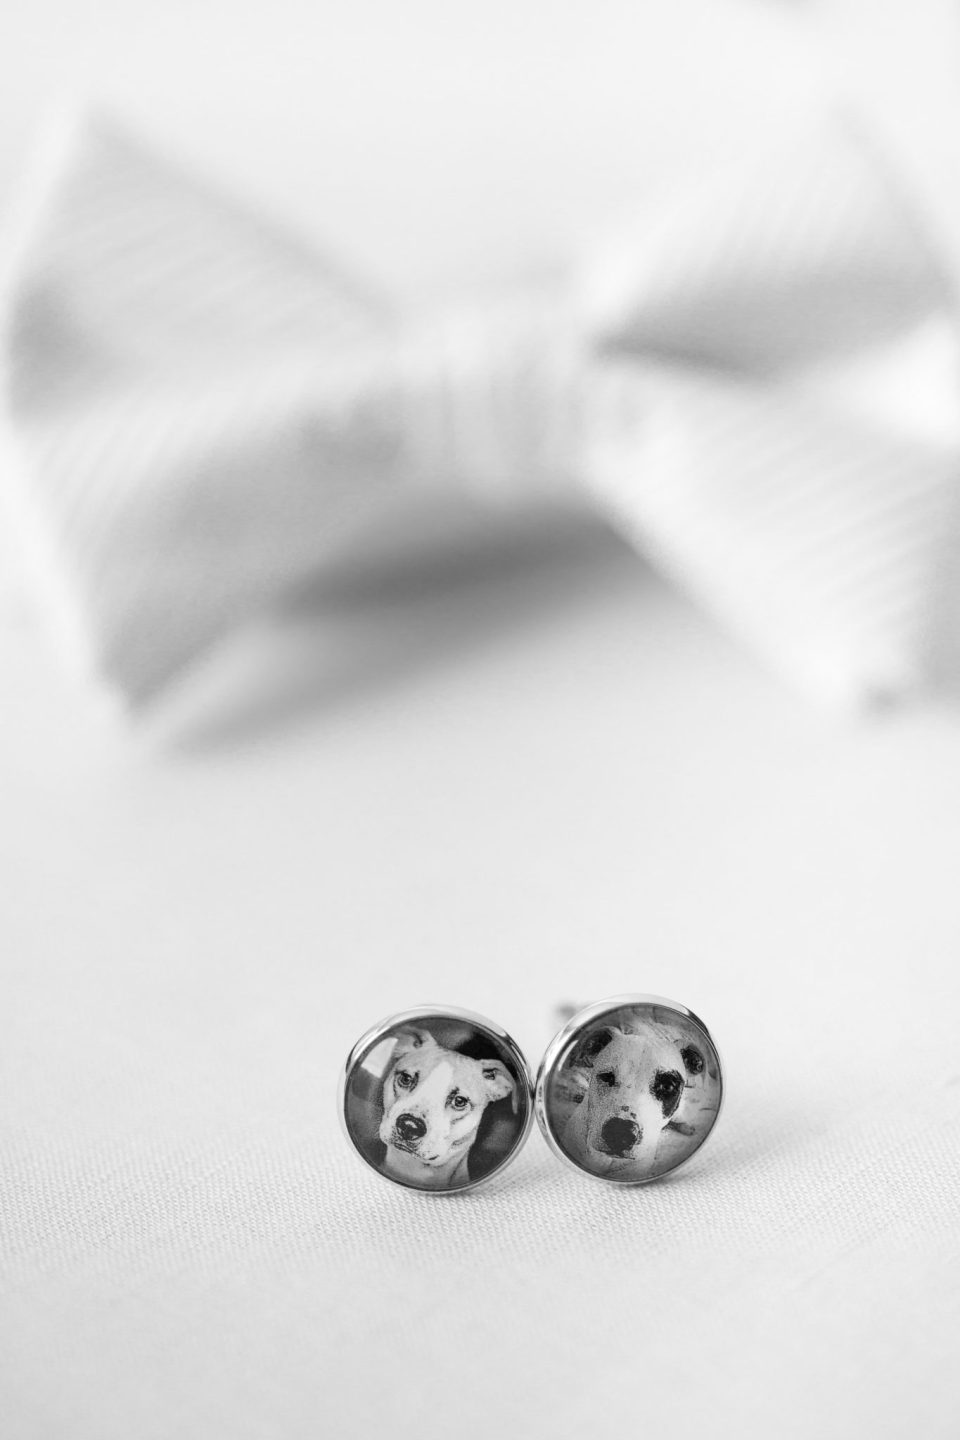 cufflinks with dog photos photographed by Ashley Mac Photographs